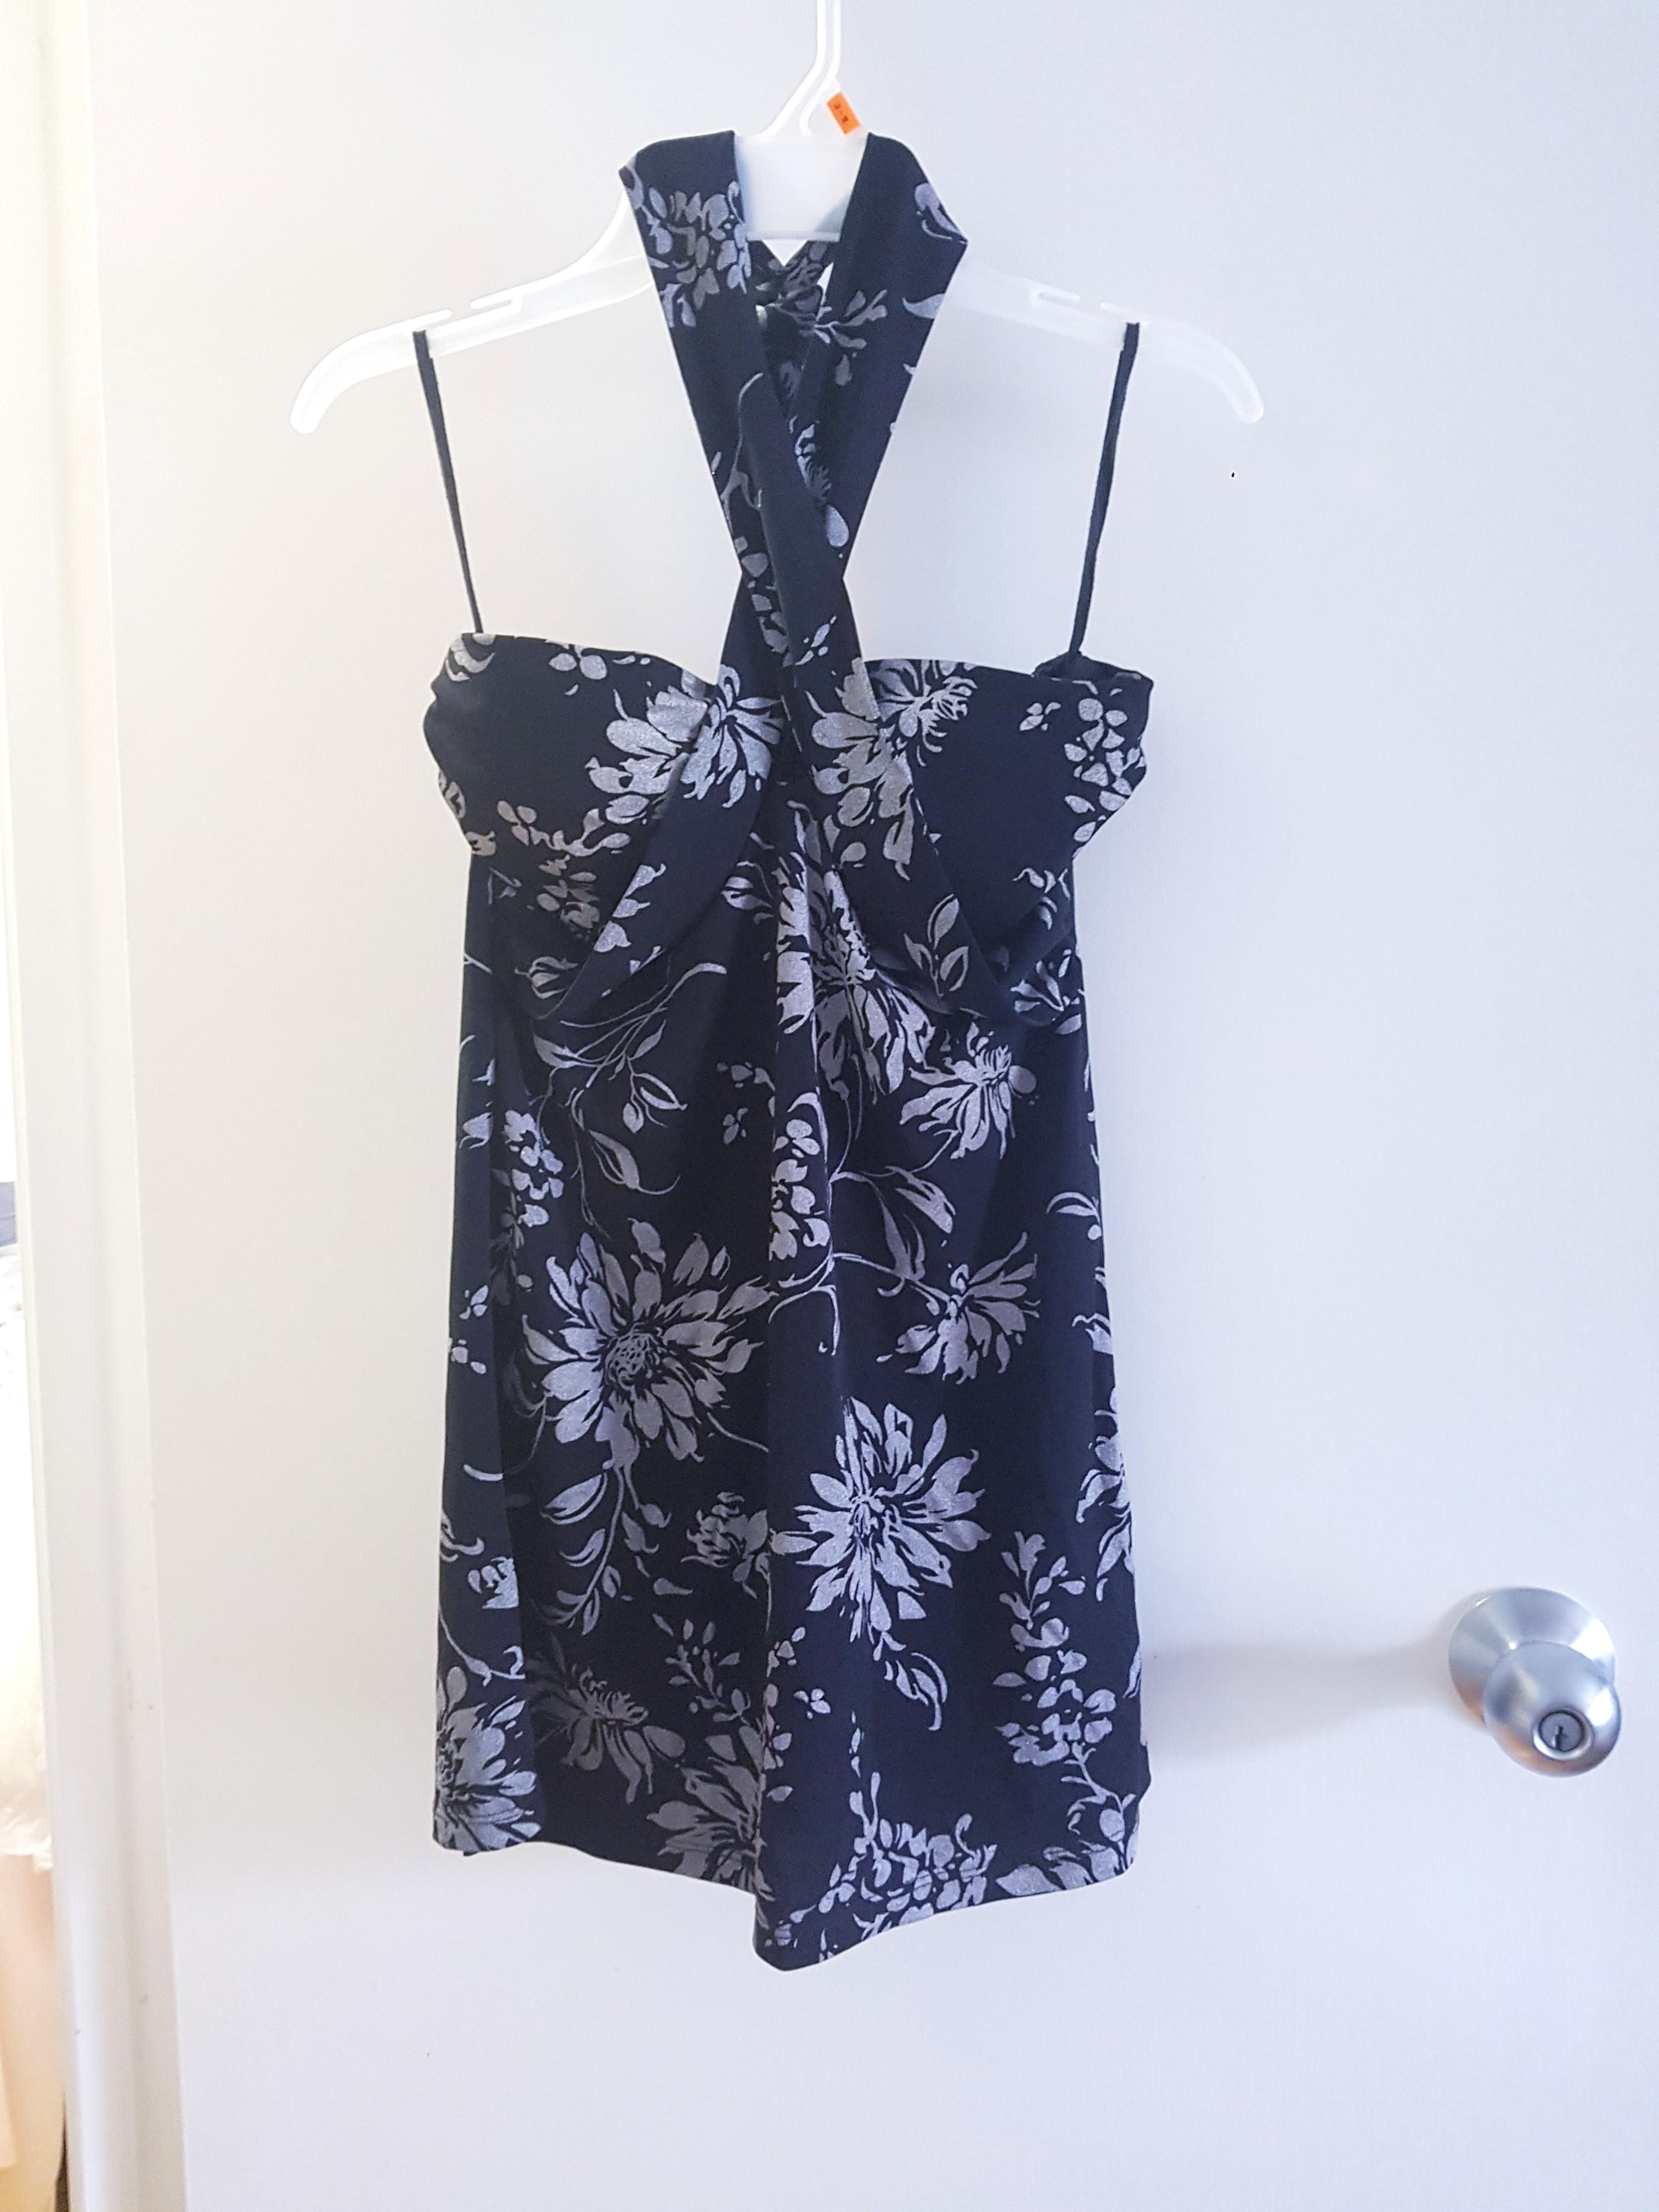 BNWT Black and Silver halter top